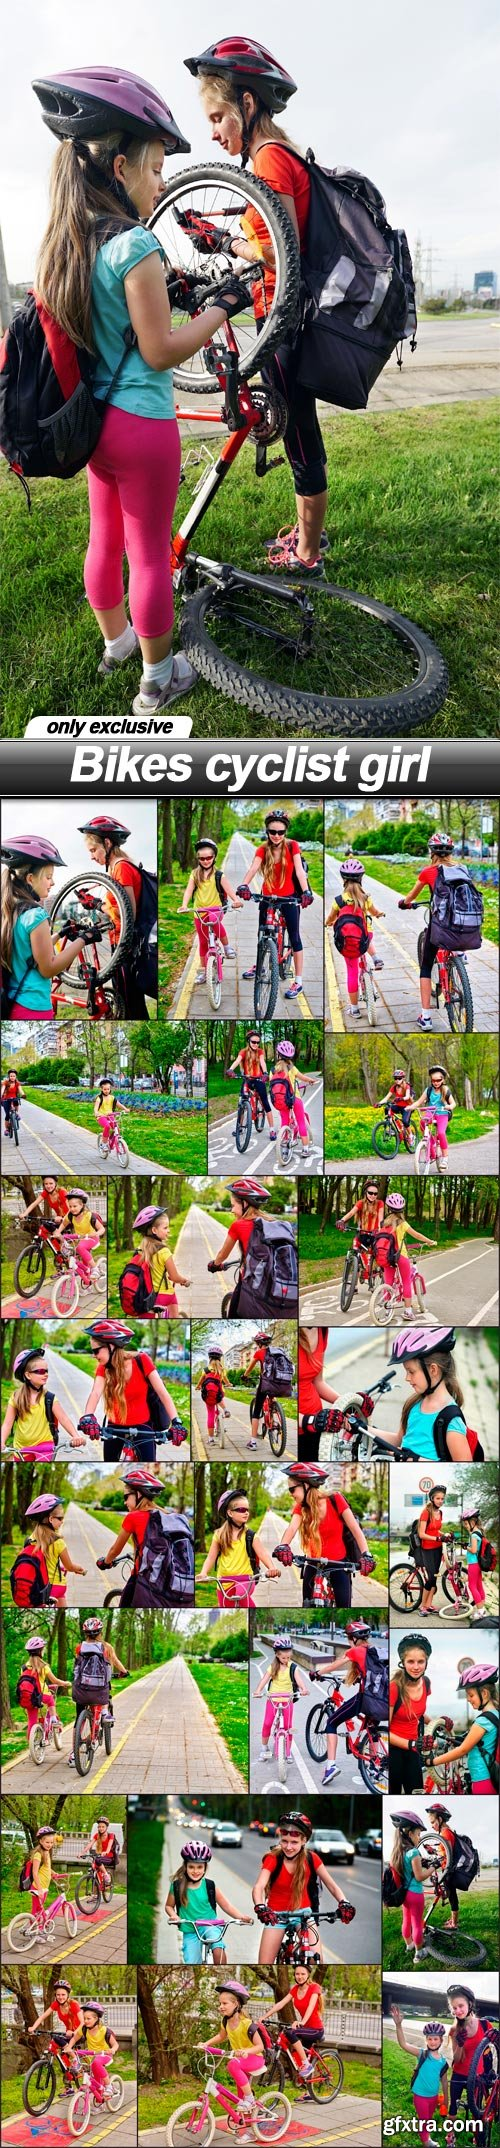 Bikes cyclist girl - 24 UHQ JPEG